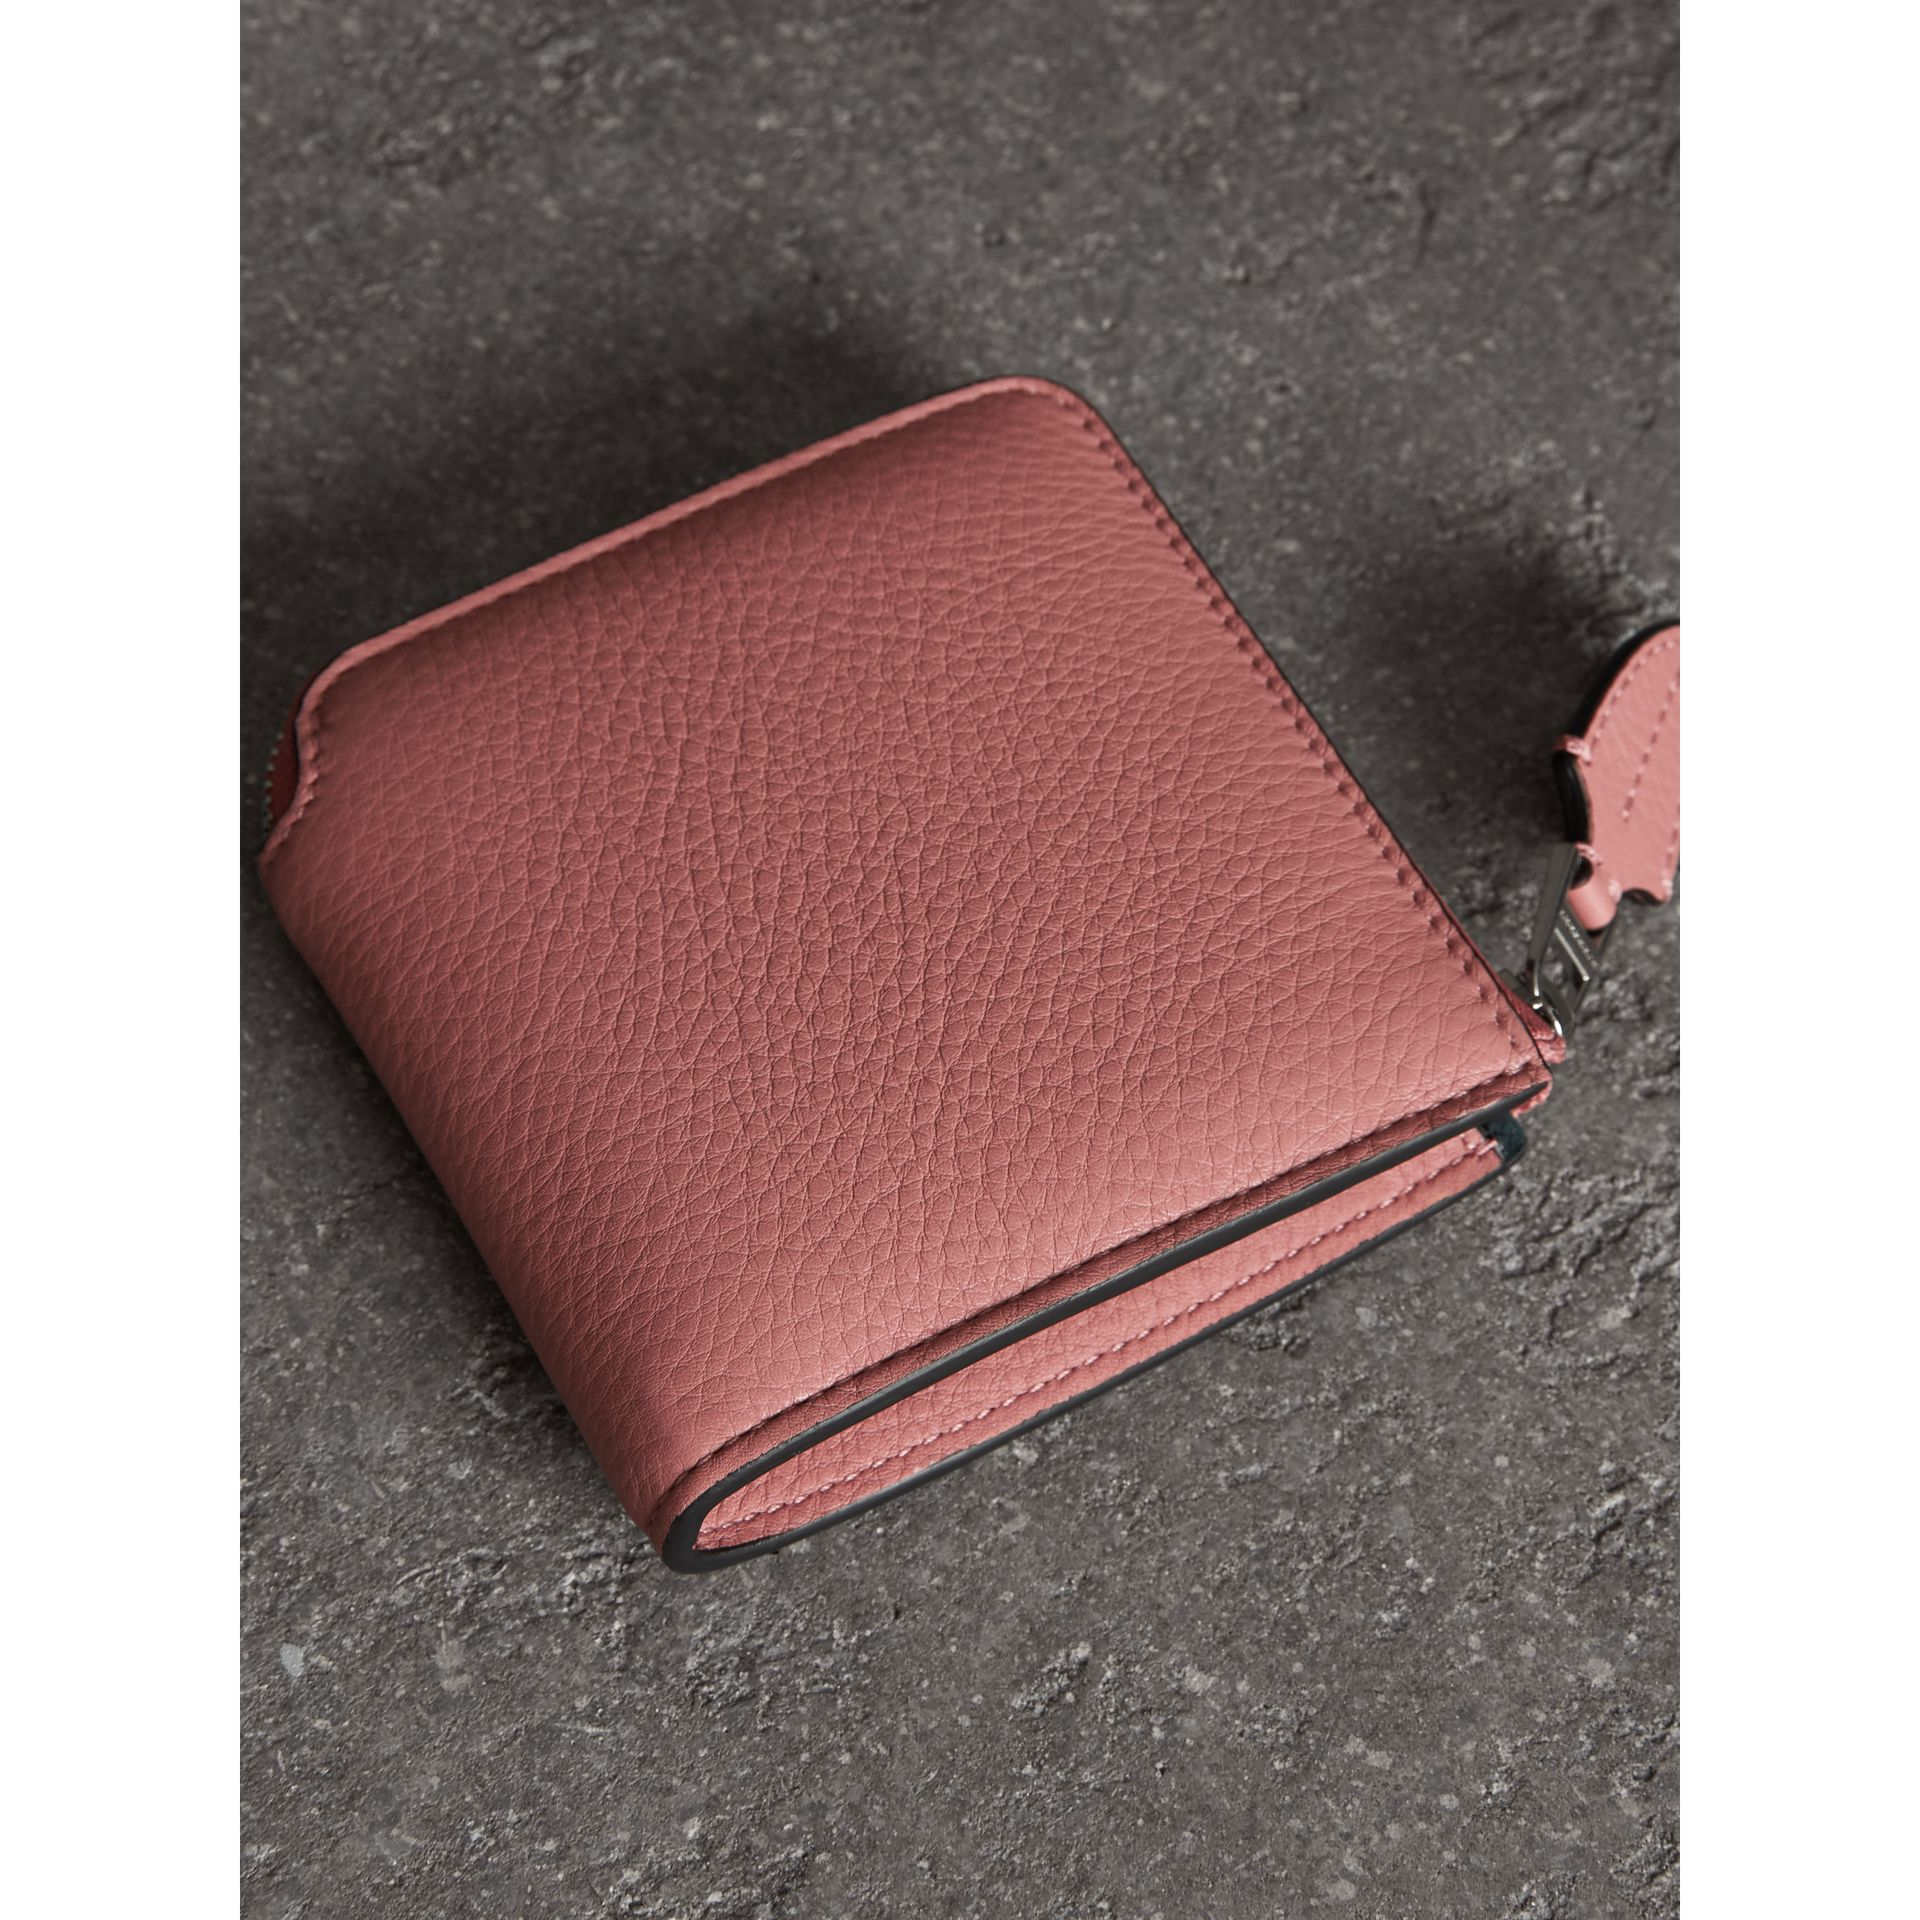 Grainy Leather Square Ziparound Wallet in Dusty Rose - Women | Burberry - gallery image 2